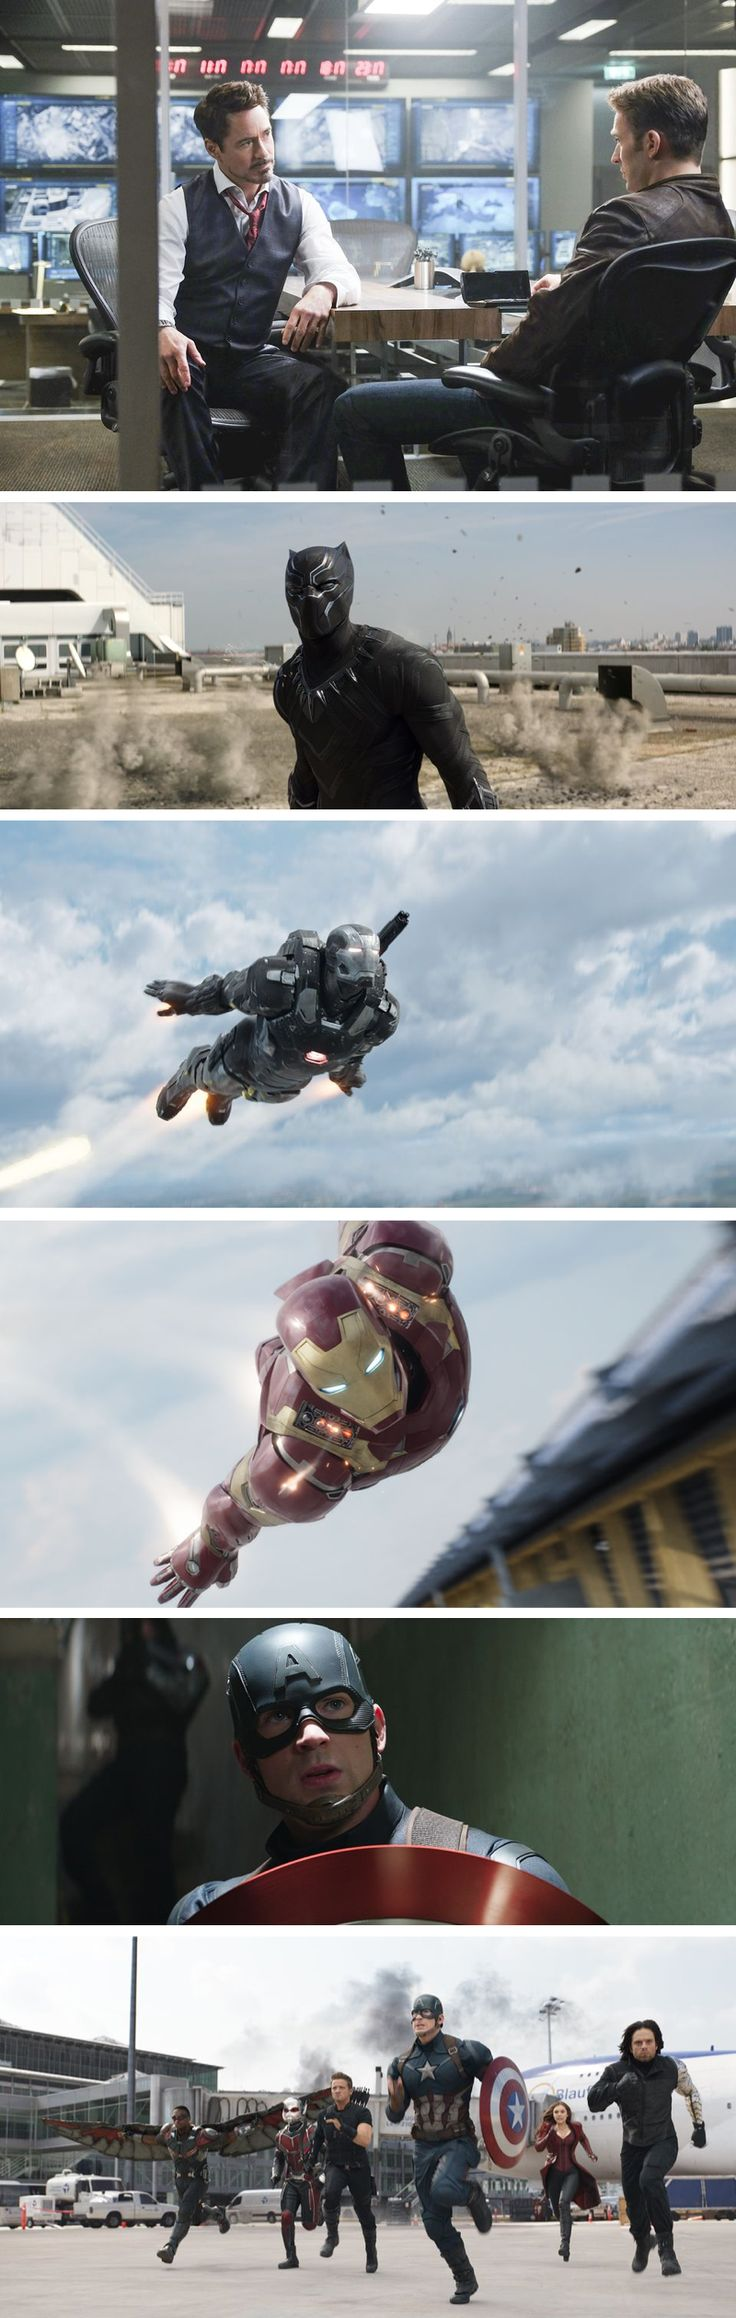 Marvel Released New Set Of High Resolution Images For 'Captain America: Civil War'